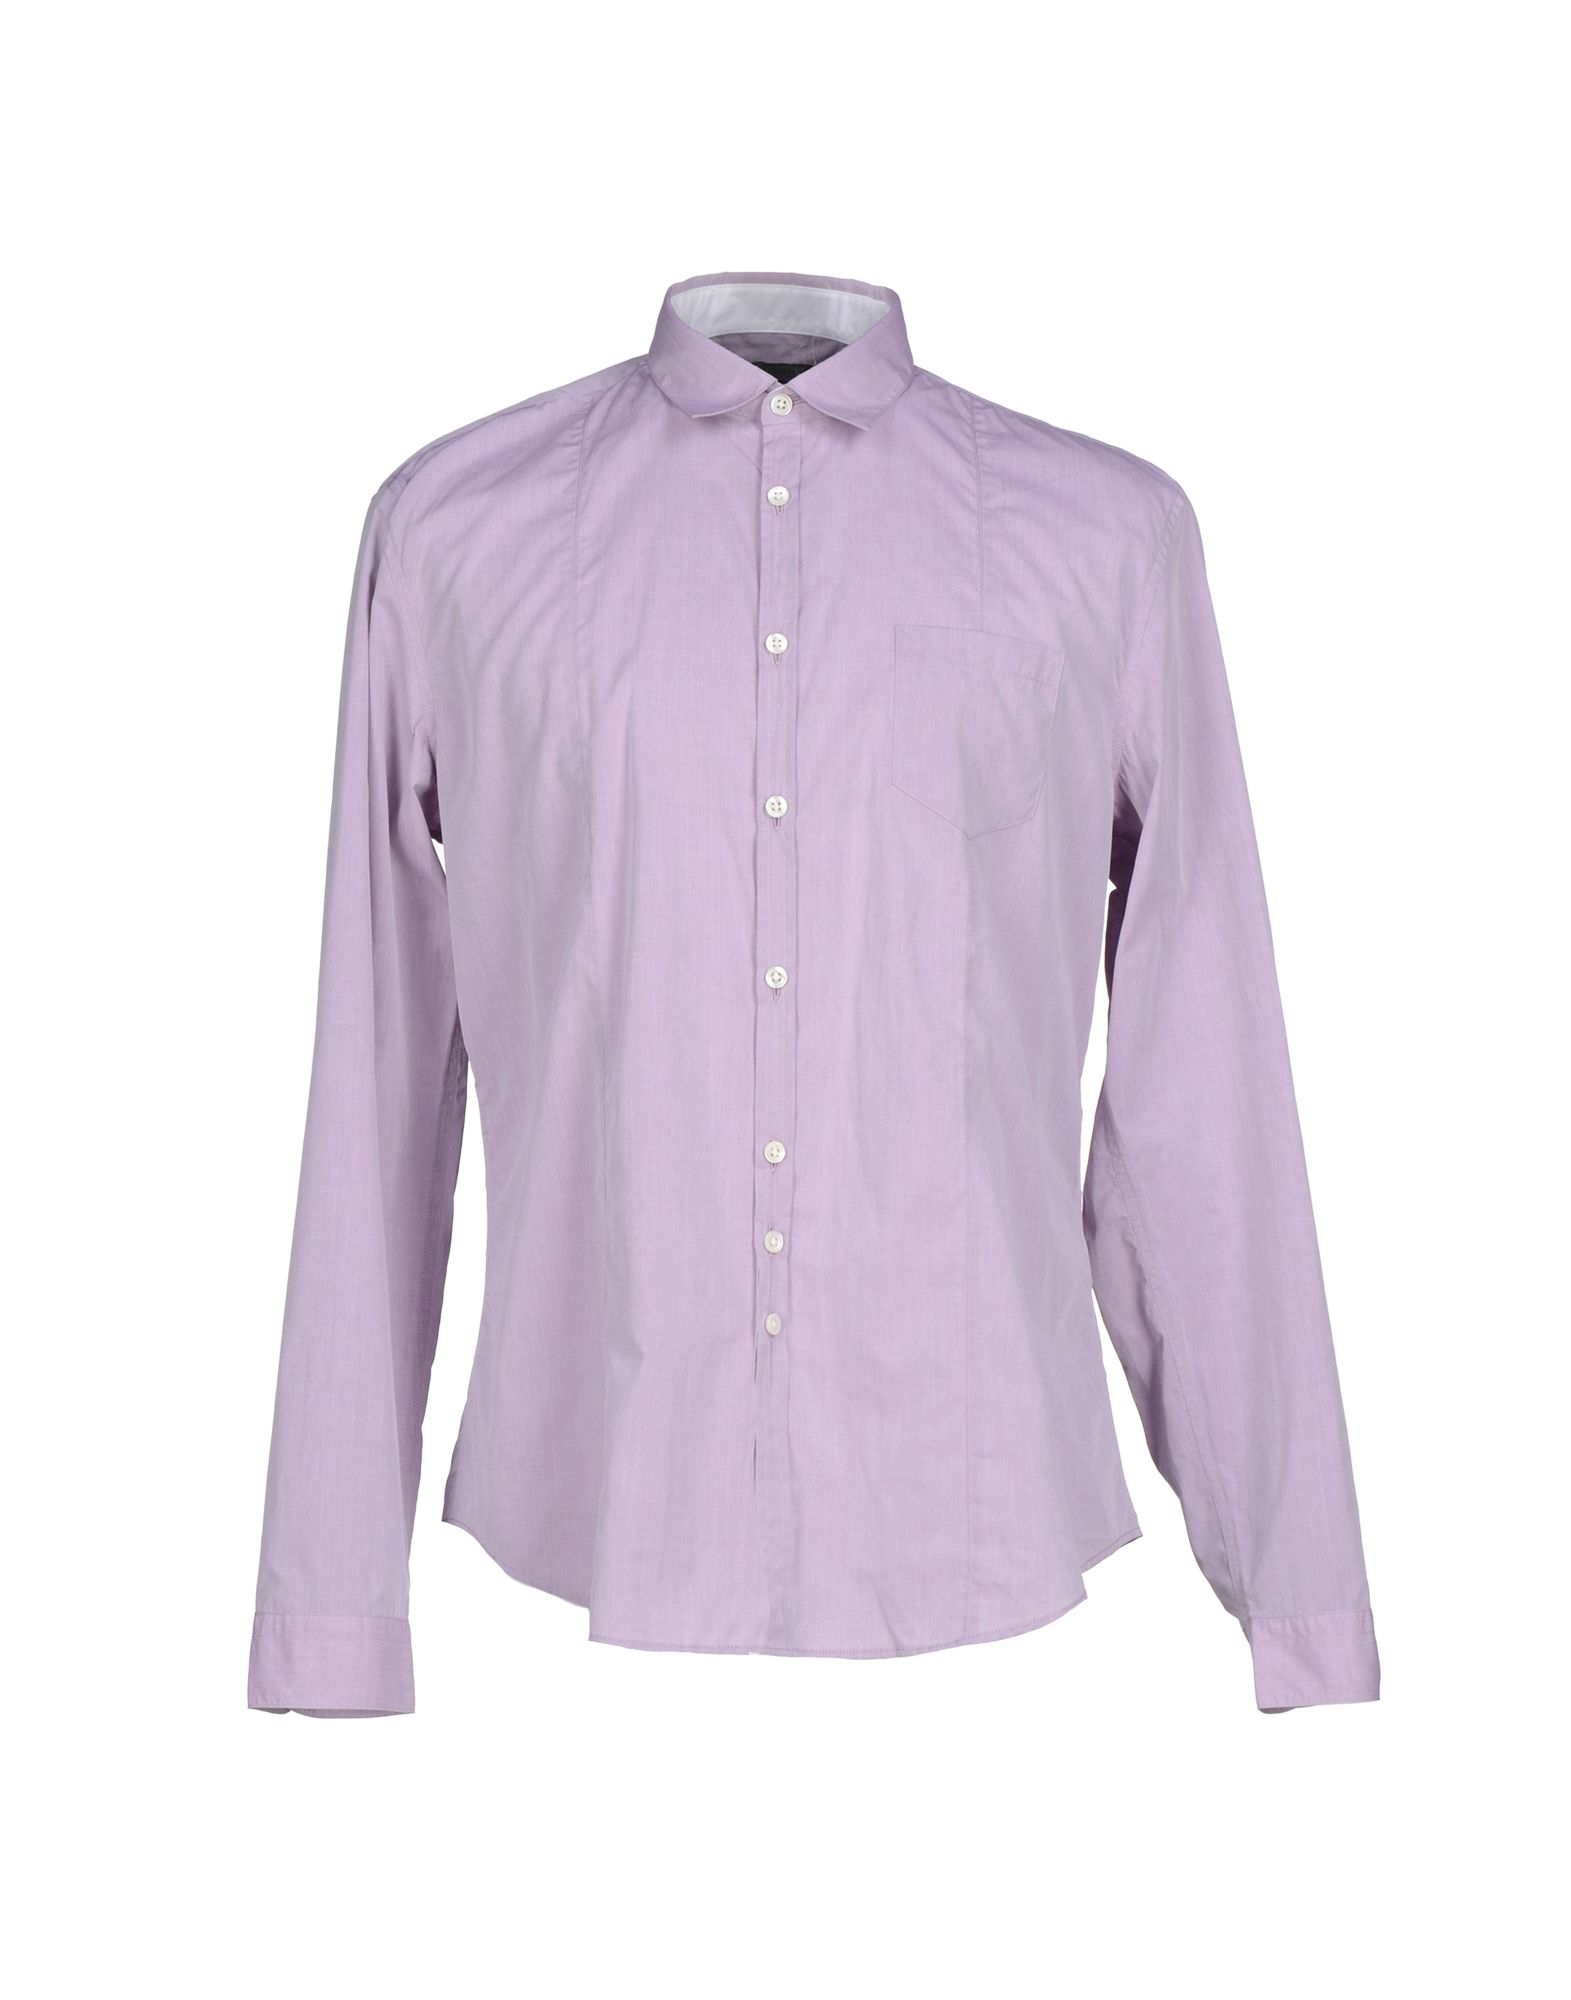 John varvatos purple shirt for men lyst Light purple dress shirt men